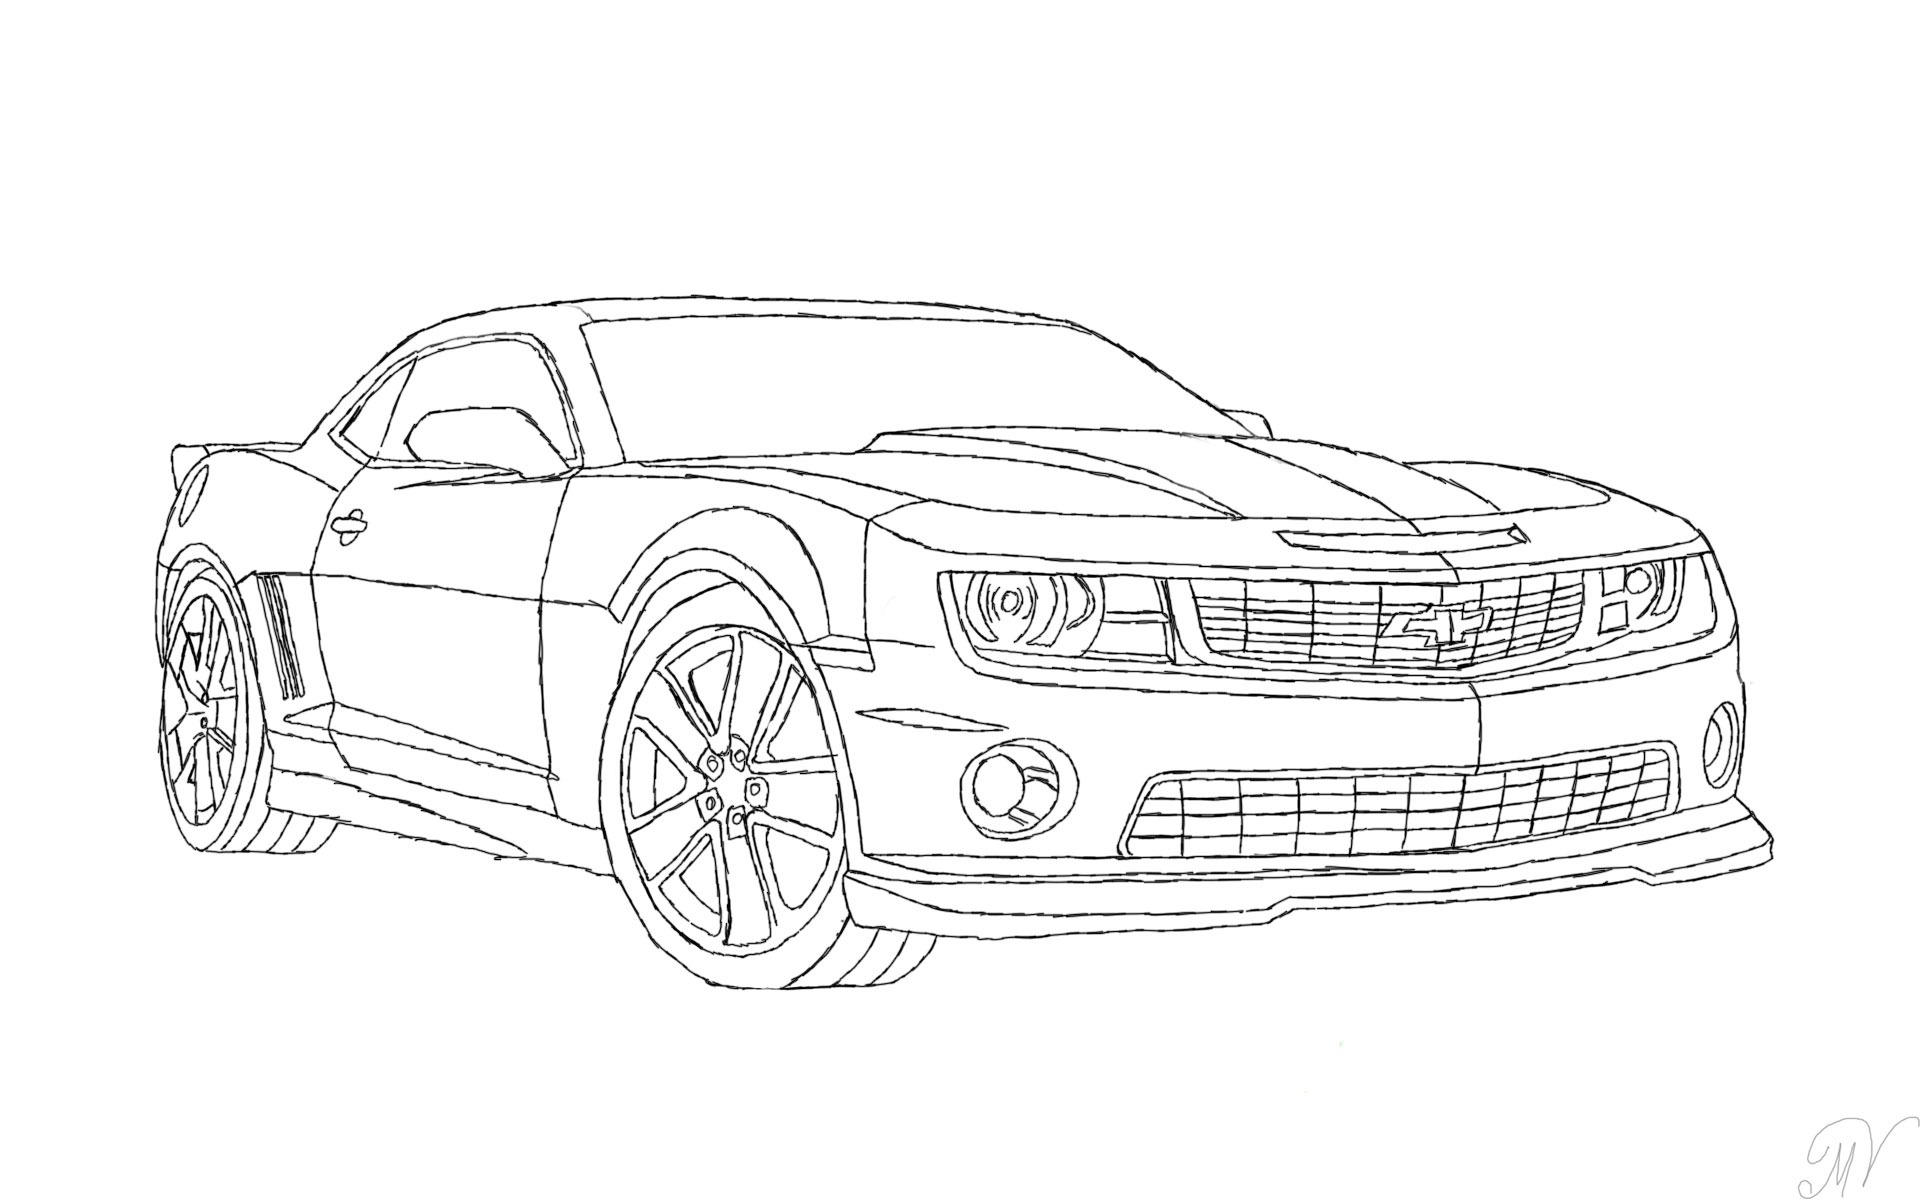 List Of Synonyms And Antonyms The Word 2016 Camaro Sketch 2015 Ford Mustang Sketches Daily Design Gallery From Http